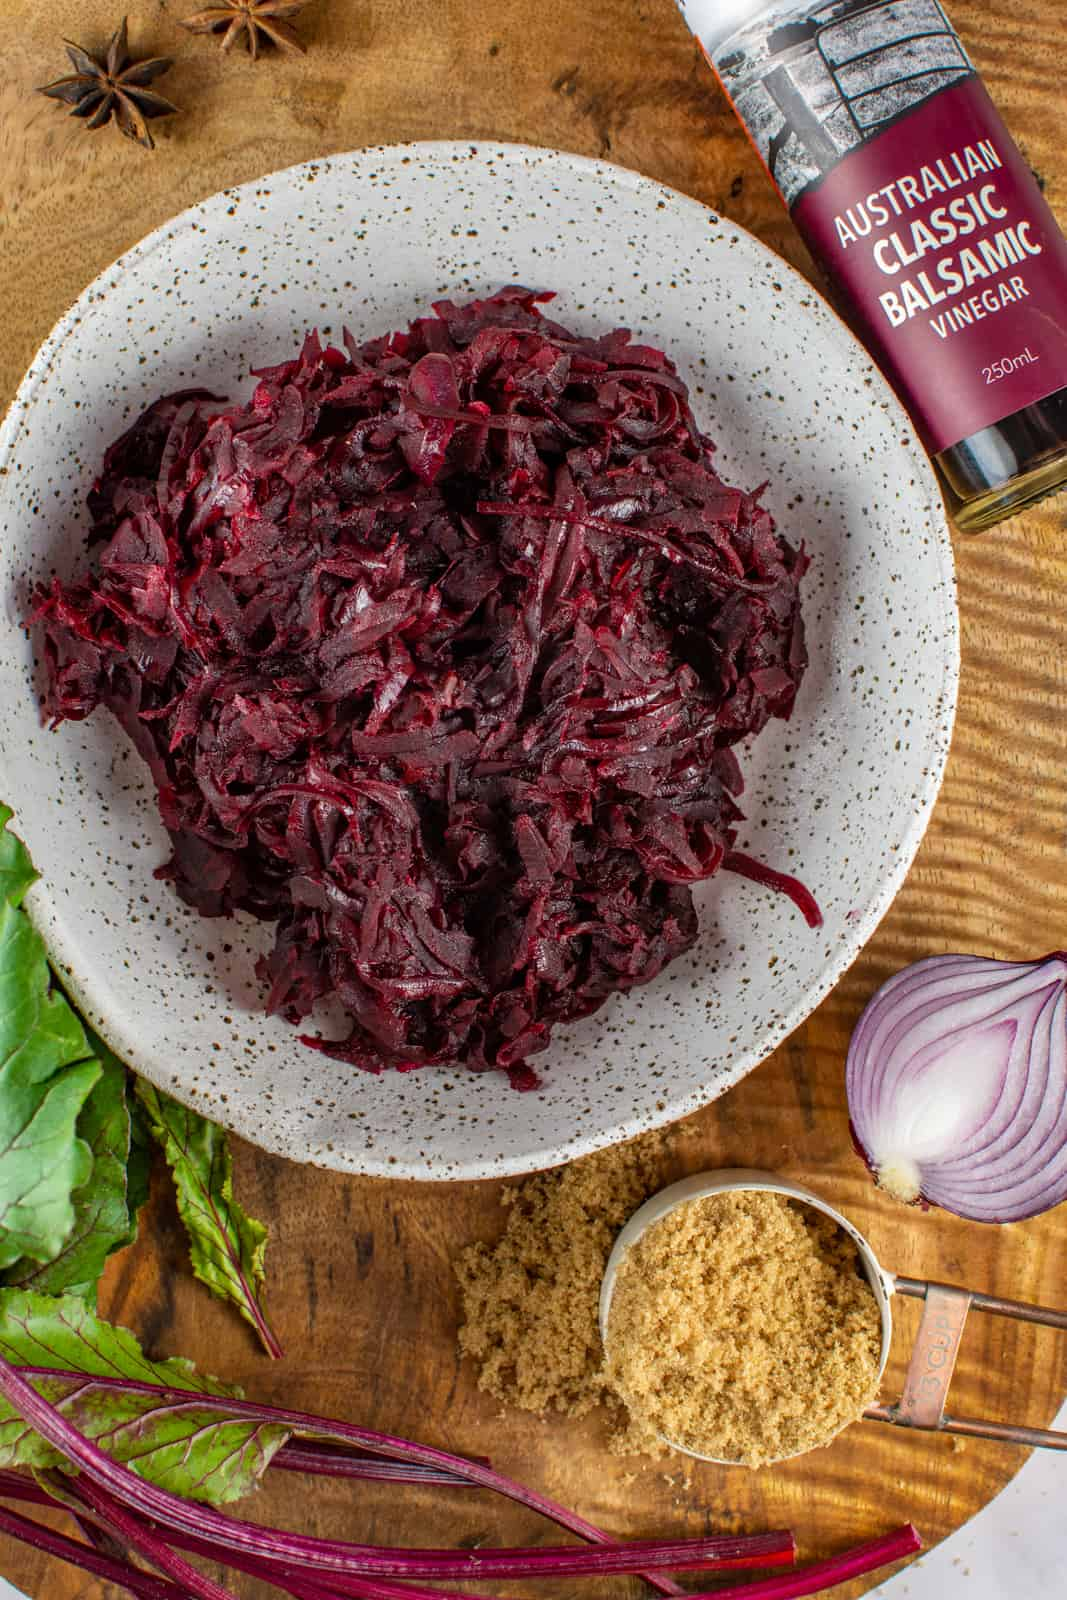 spicy beetroot relish in a white bowl on a wooden board with balsamic vinegar, beets, anise and sugar